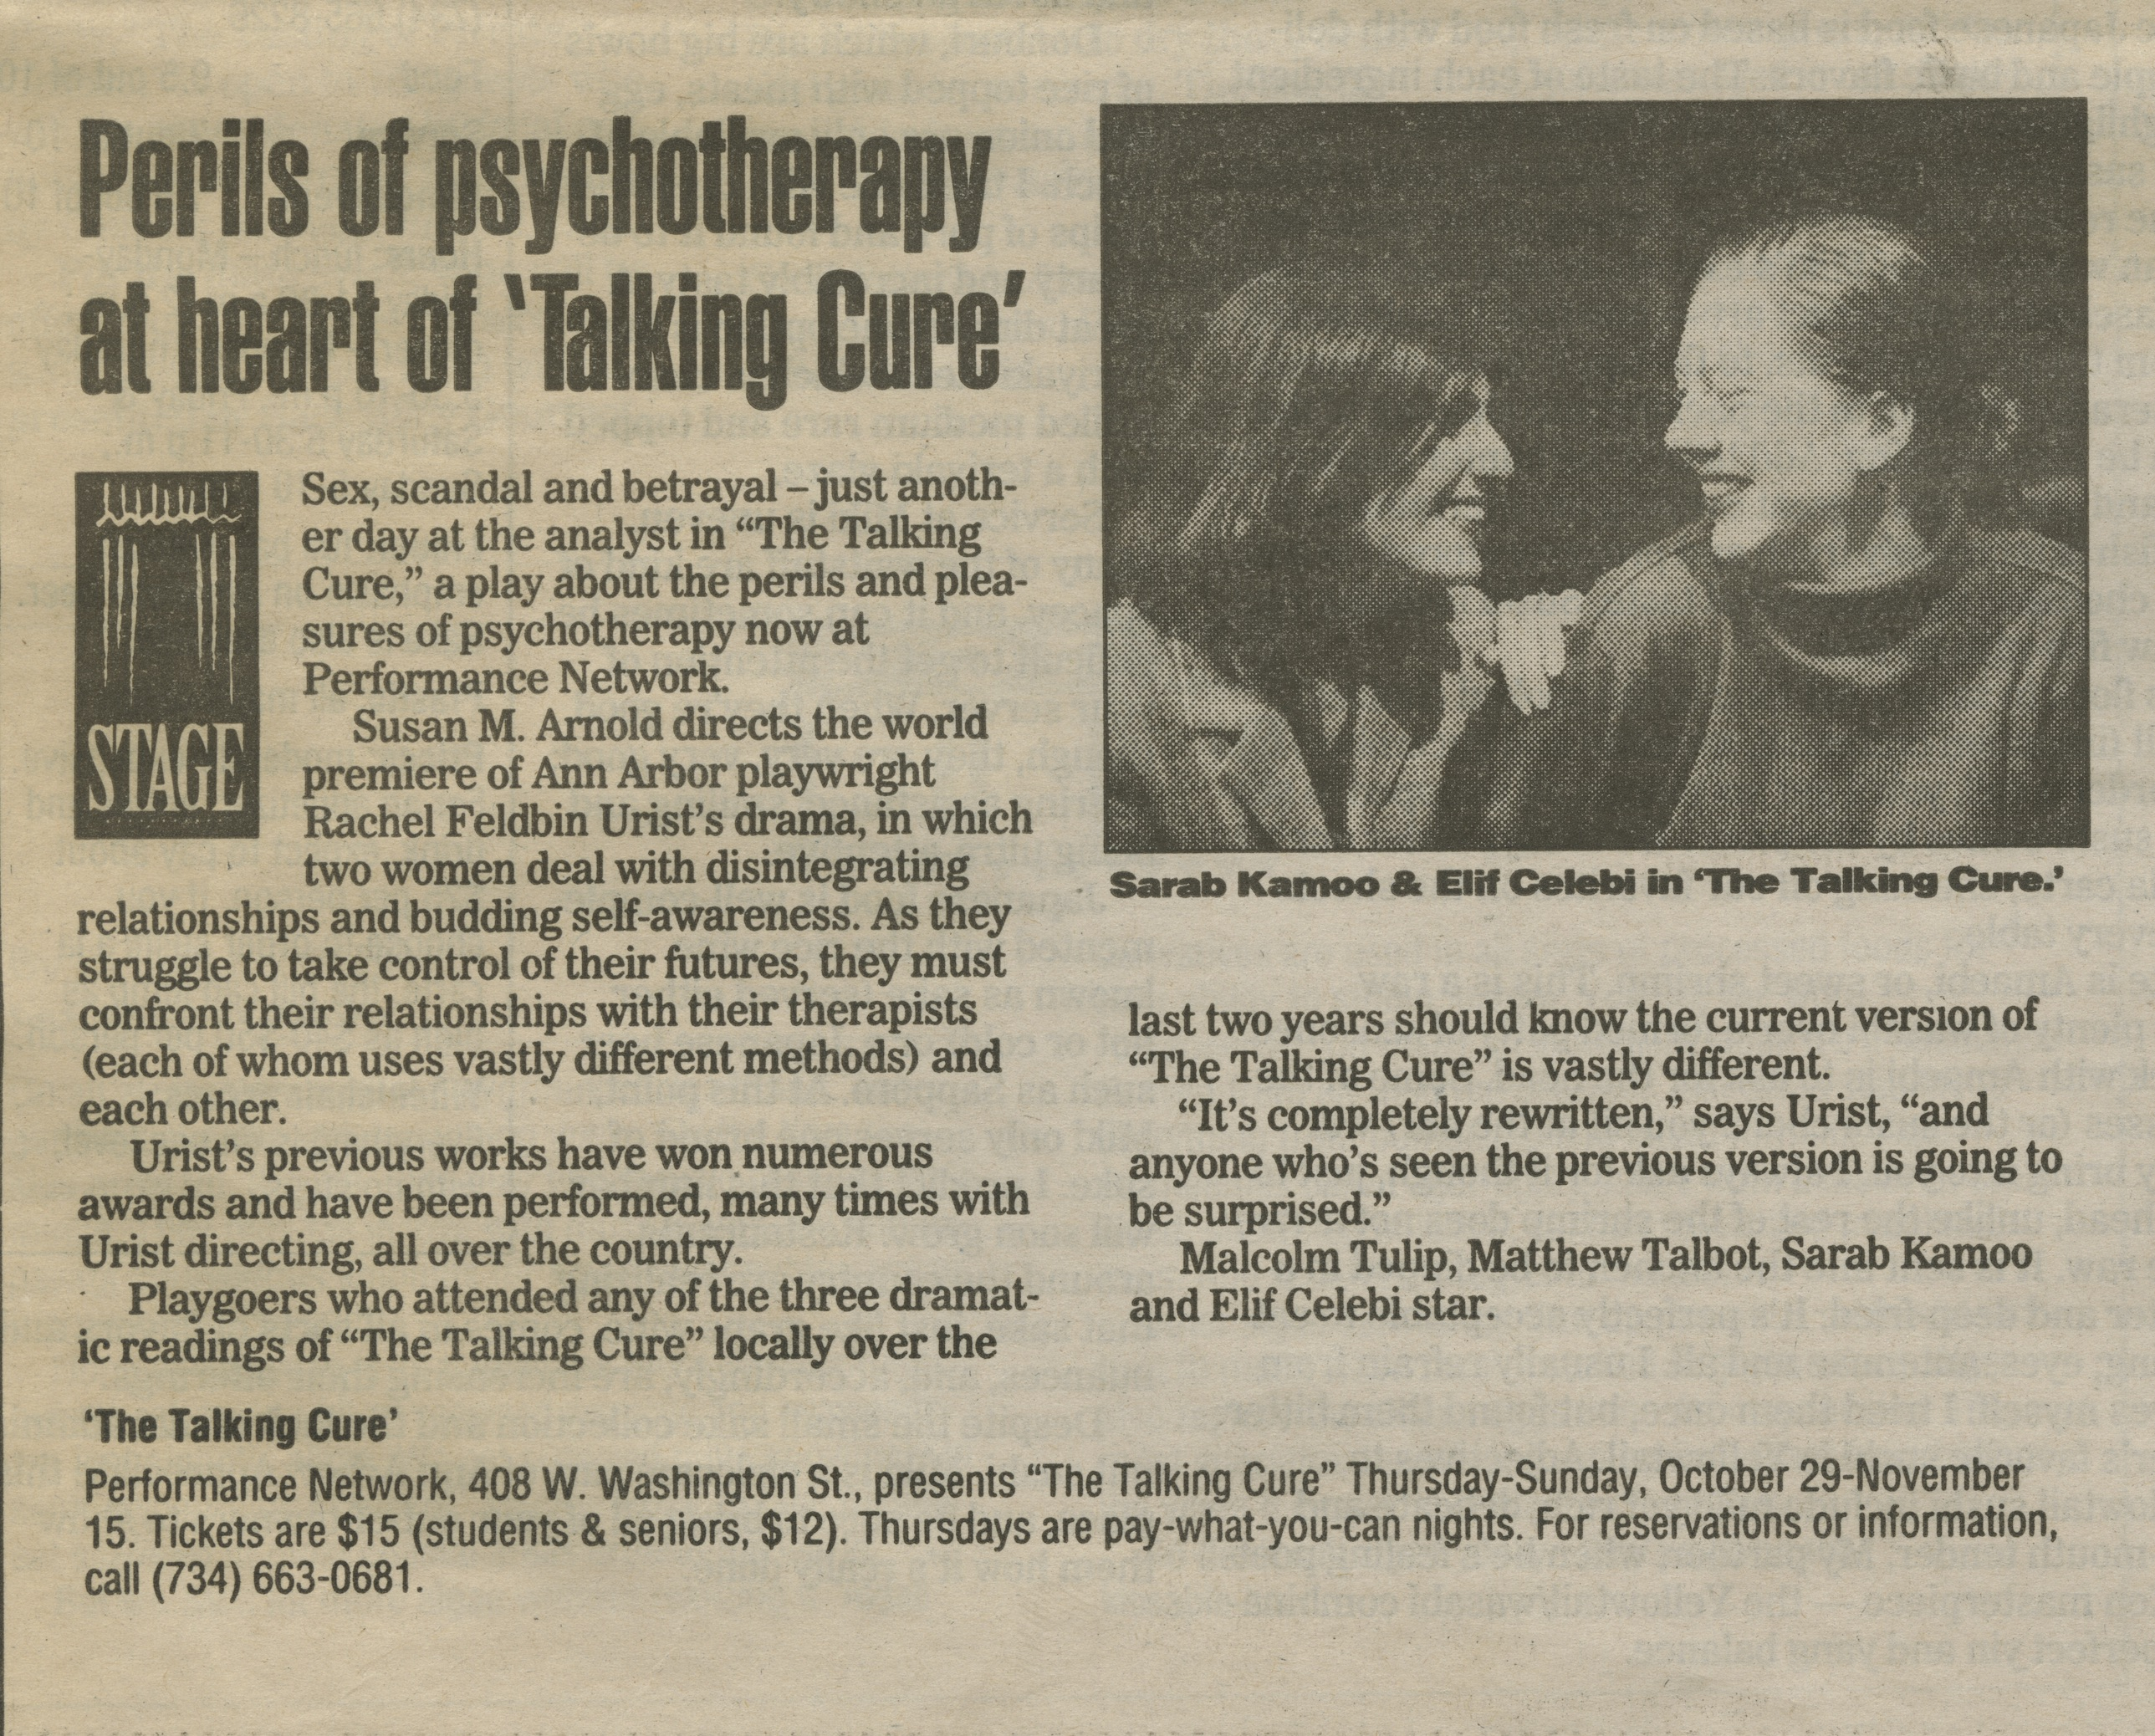 Perils of psychotherapy at heart of 'Talking Cure' image